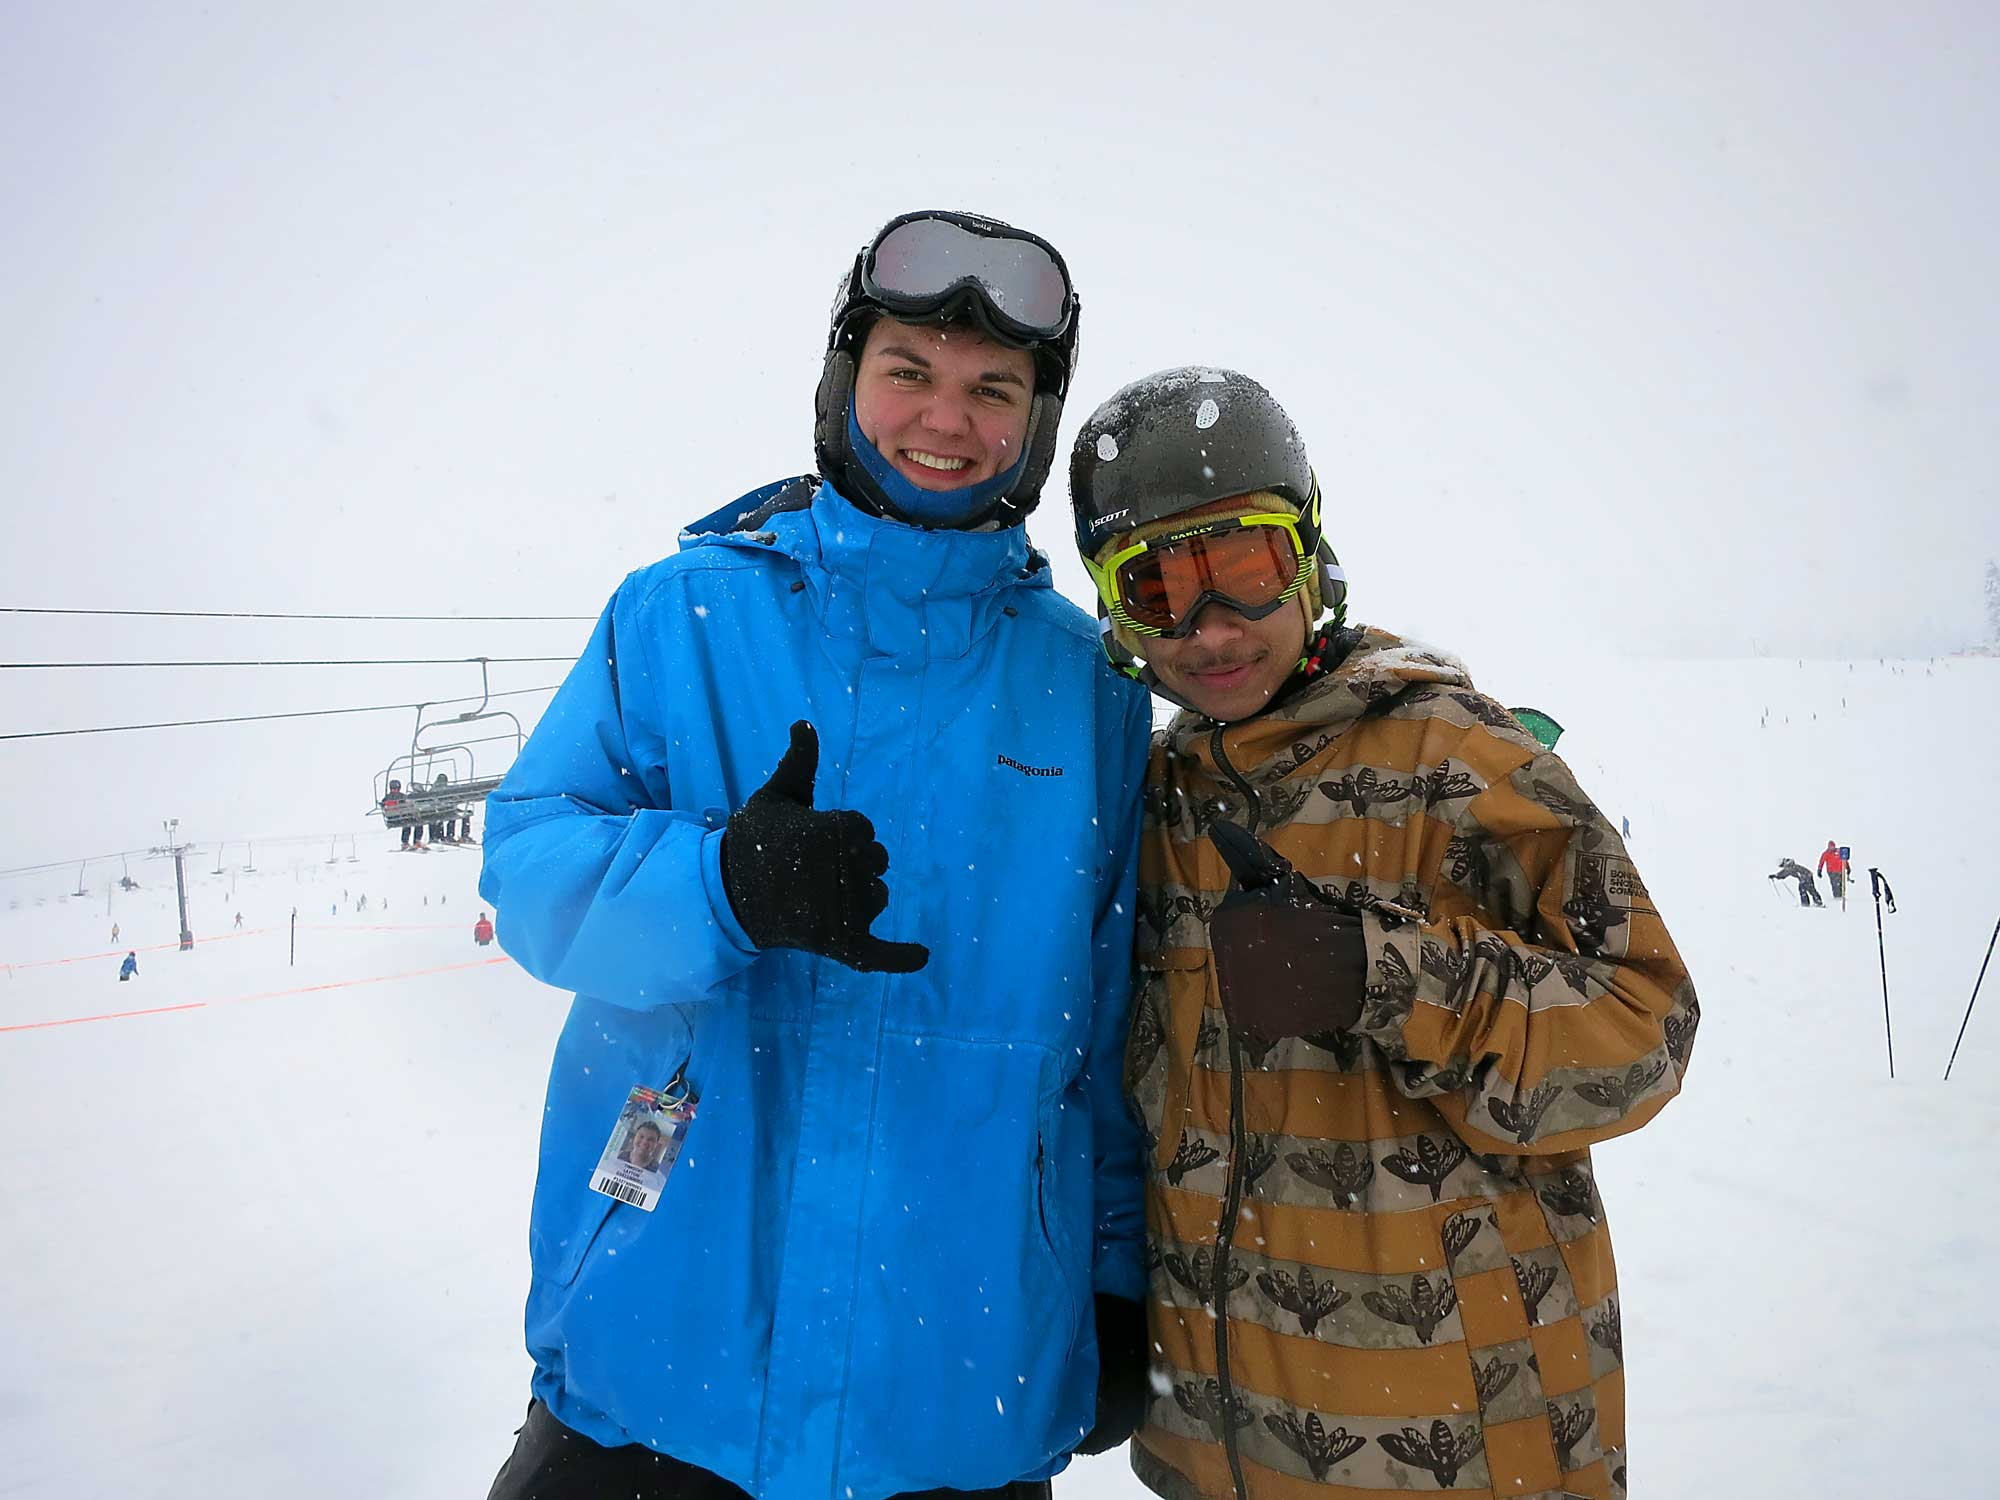 Tim (left) and one of our Peer Leaders, Masra (right) taking a break from all the POW for our tSB Photographer!